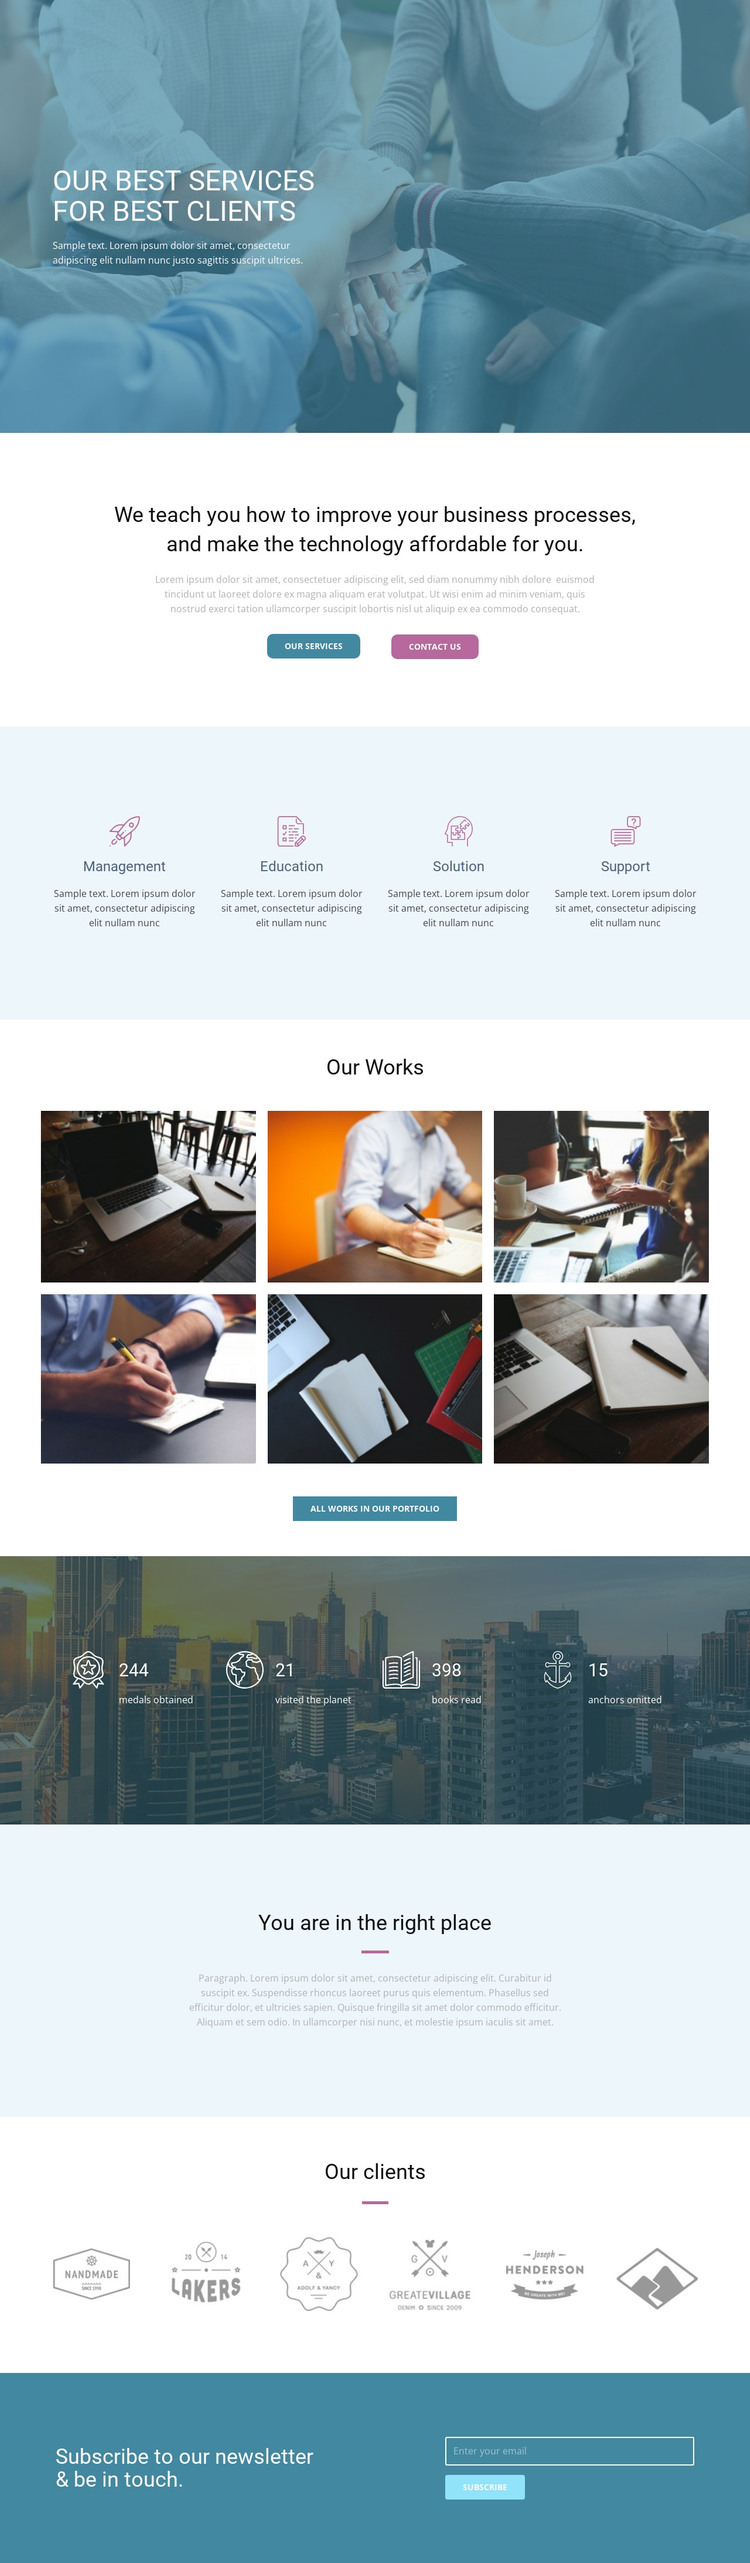 Best services for clients WordPress Theme